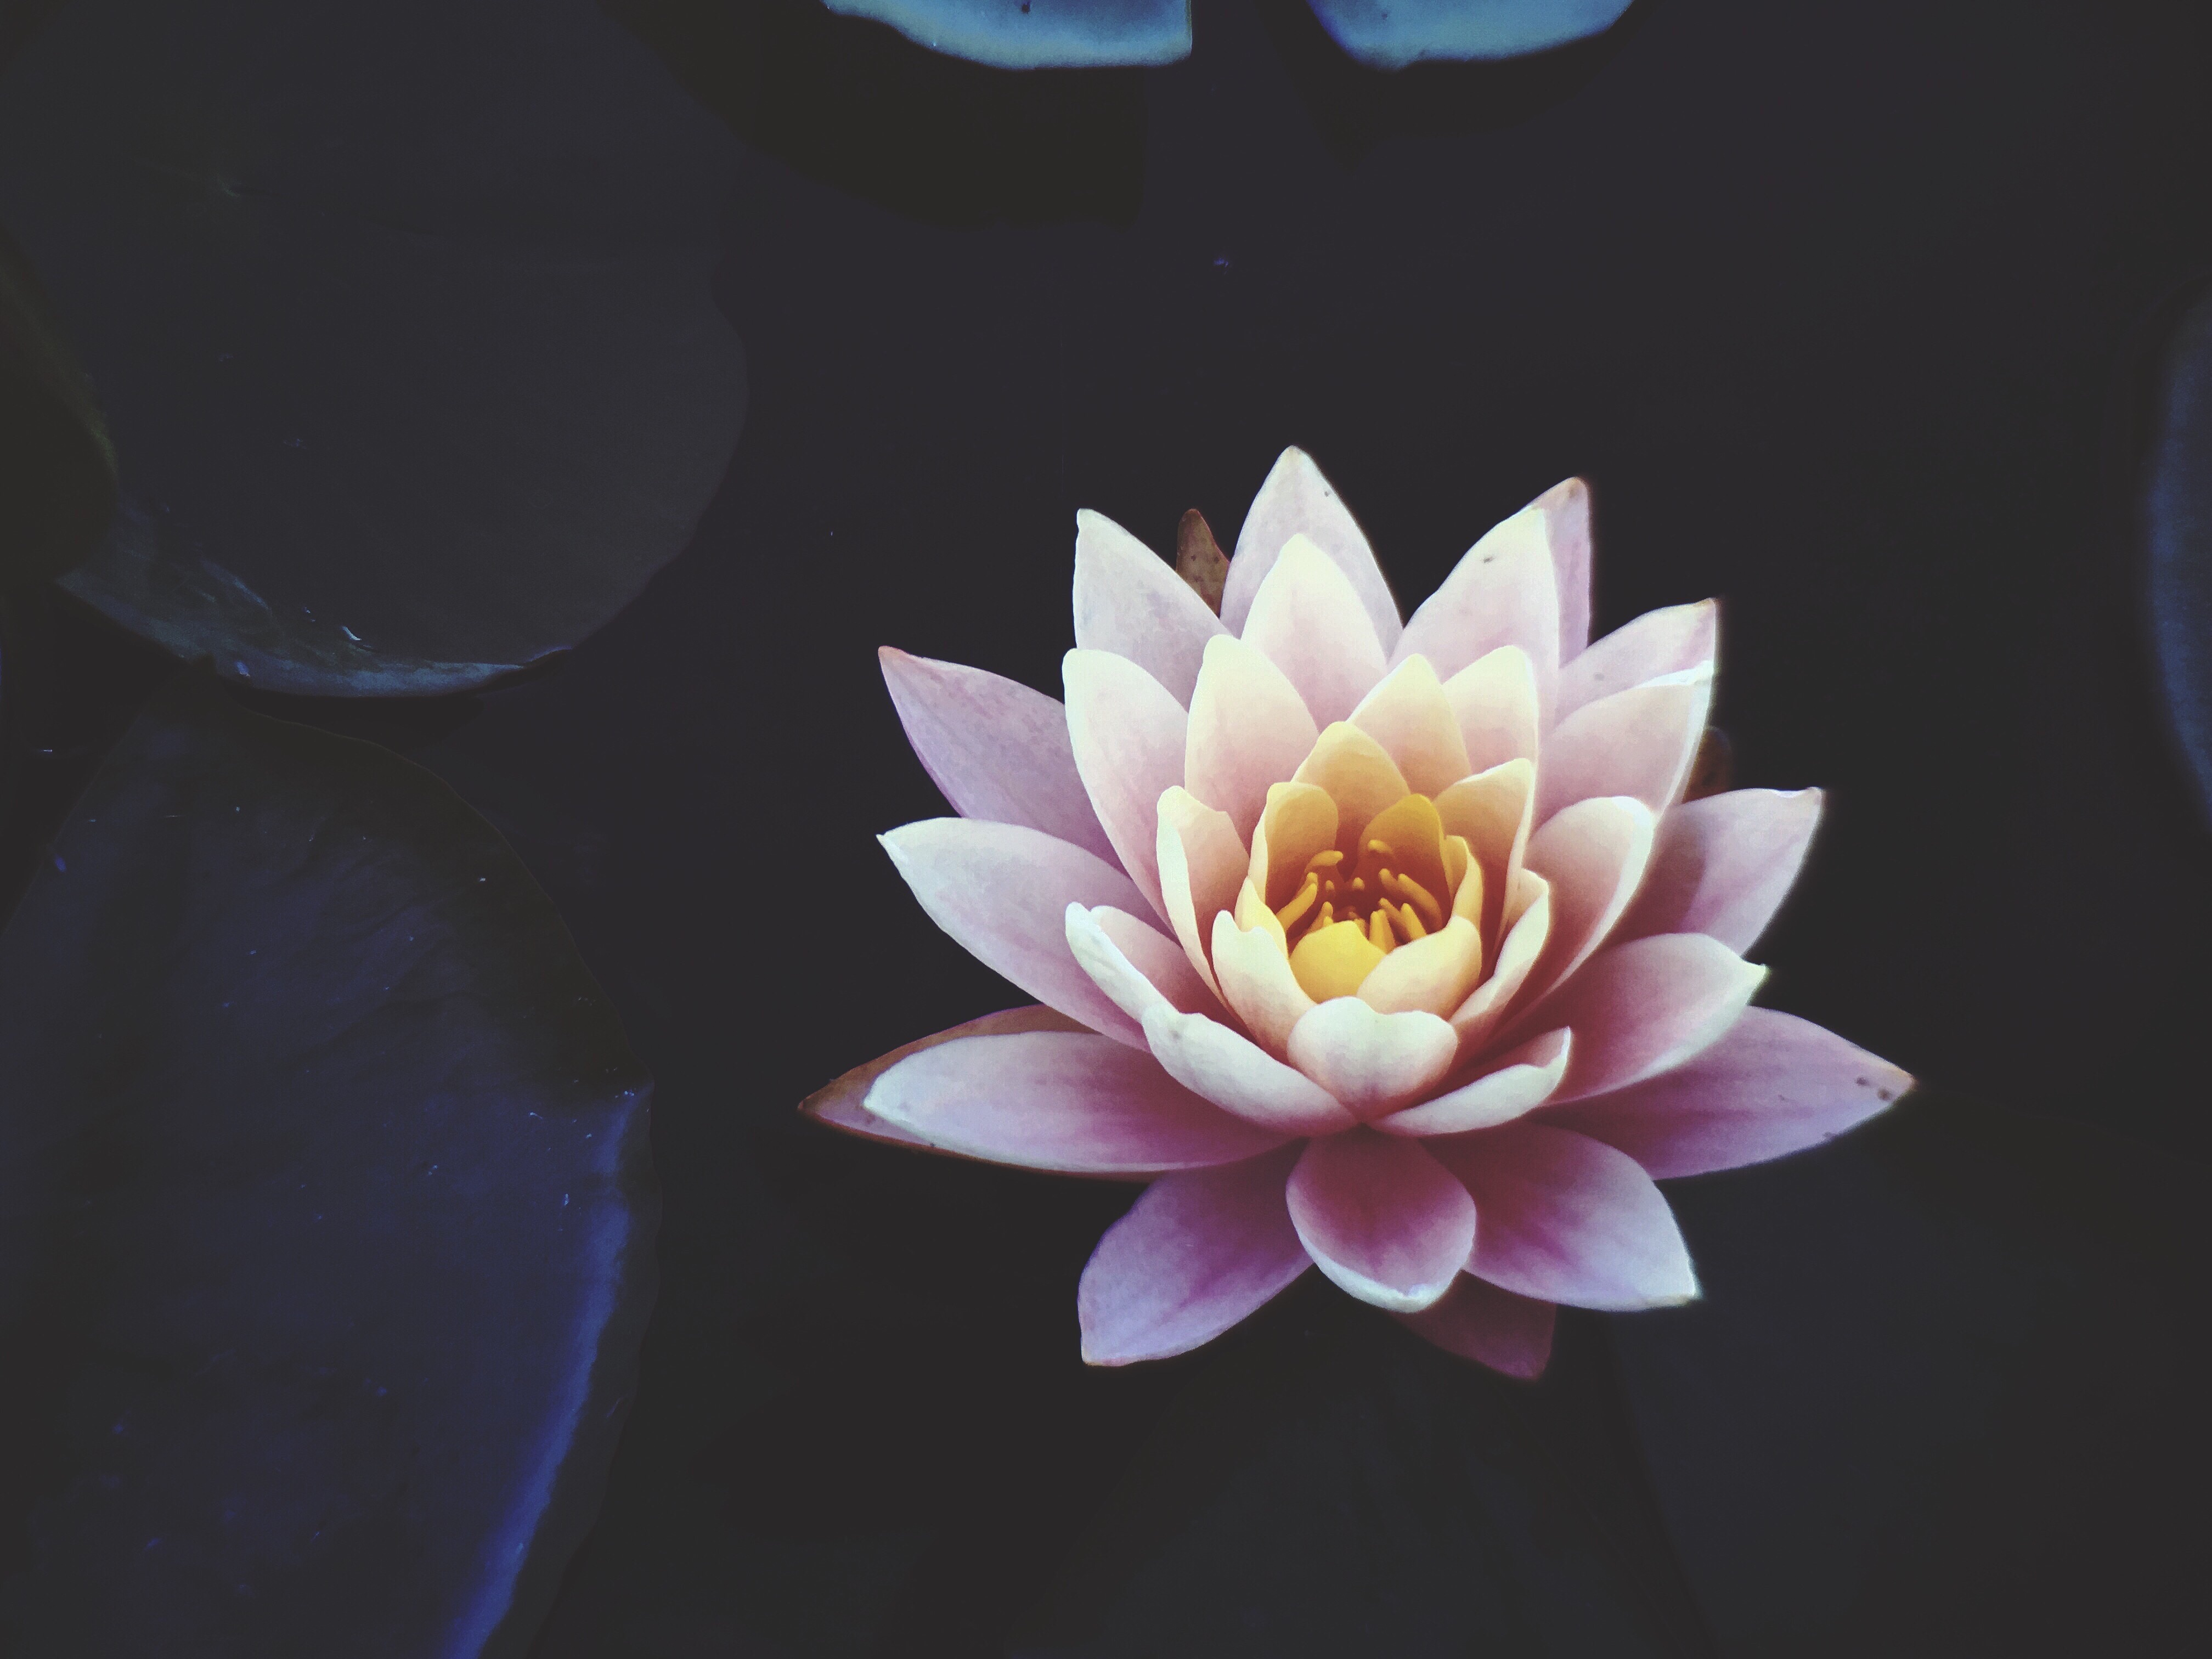 Wallpaper Black And White Flowers Lotus Flower Blooming During Daytime 183 Free Stock Photo